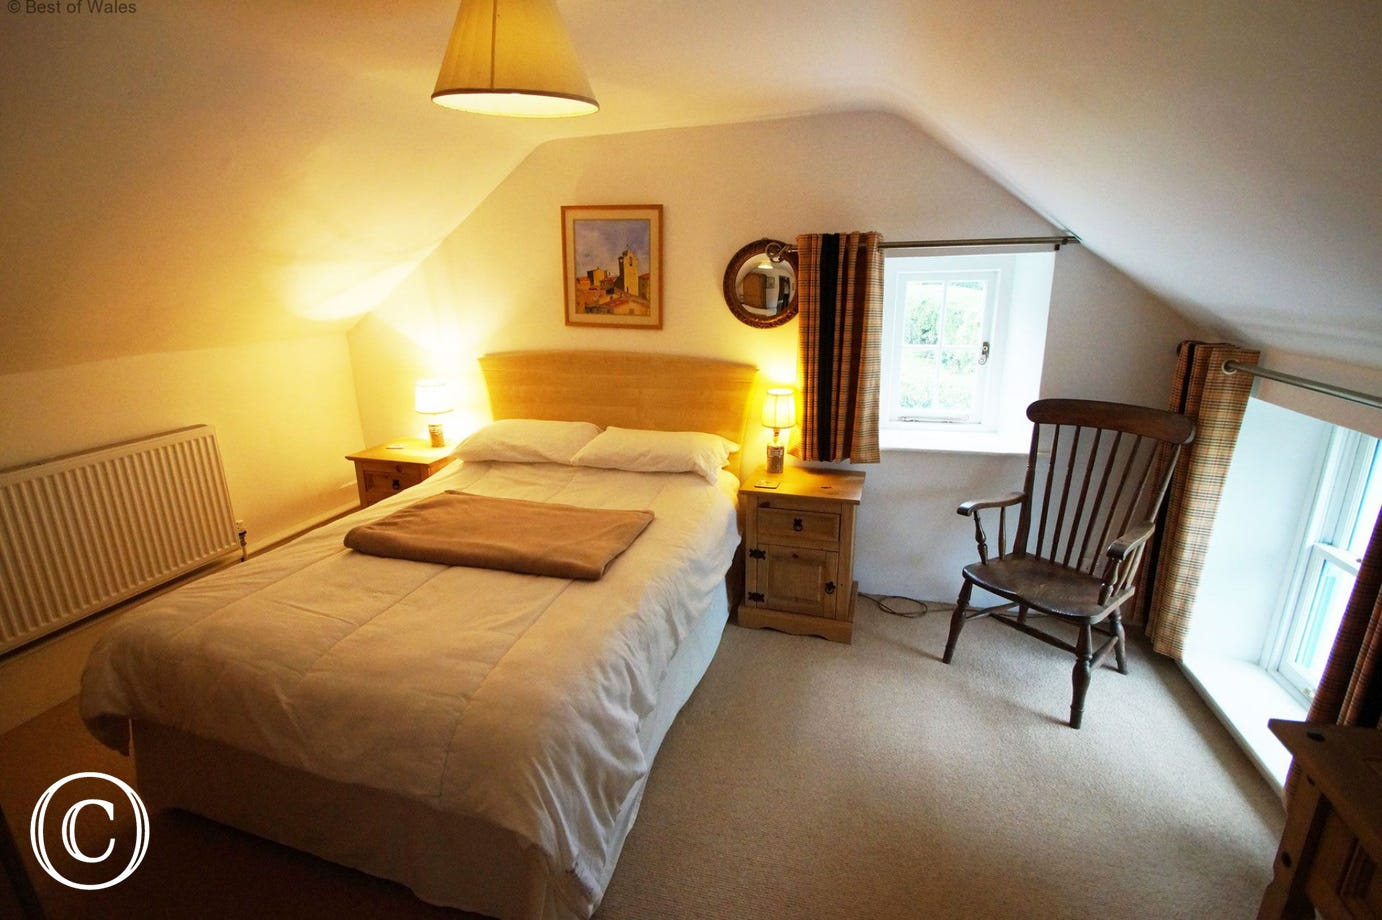 Bwthyn Amroth's Pembrokeshire beach cottage - double bedroom